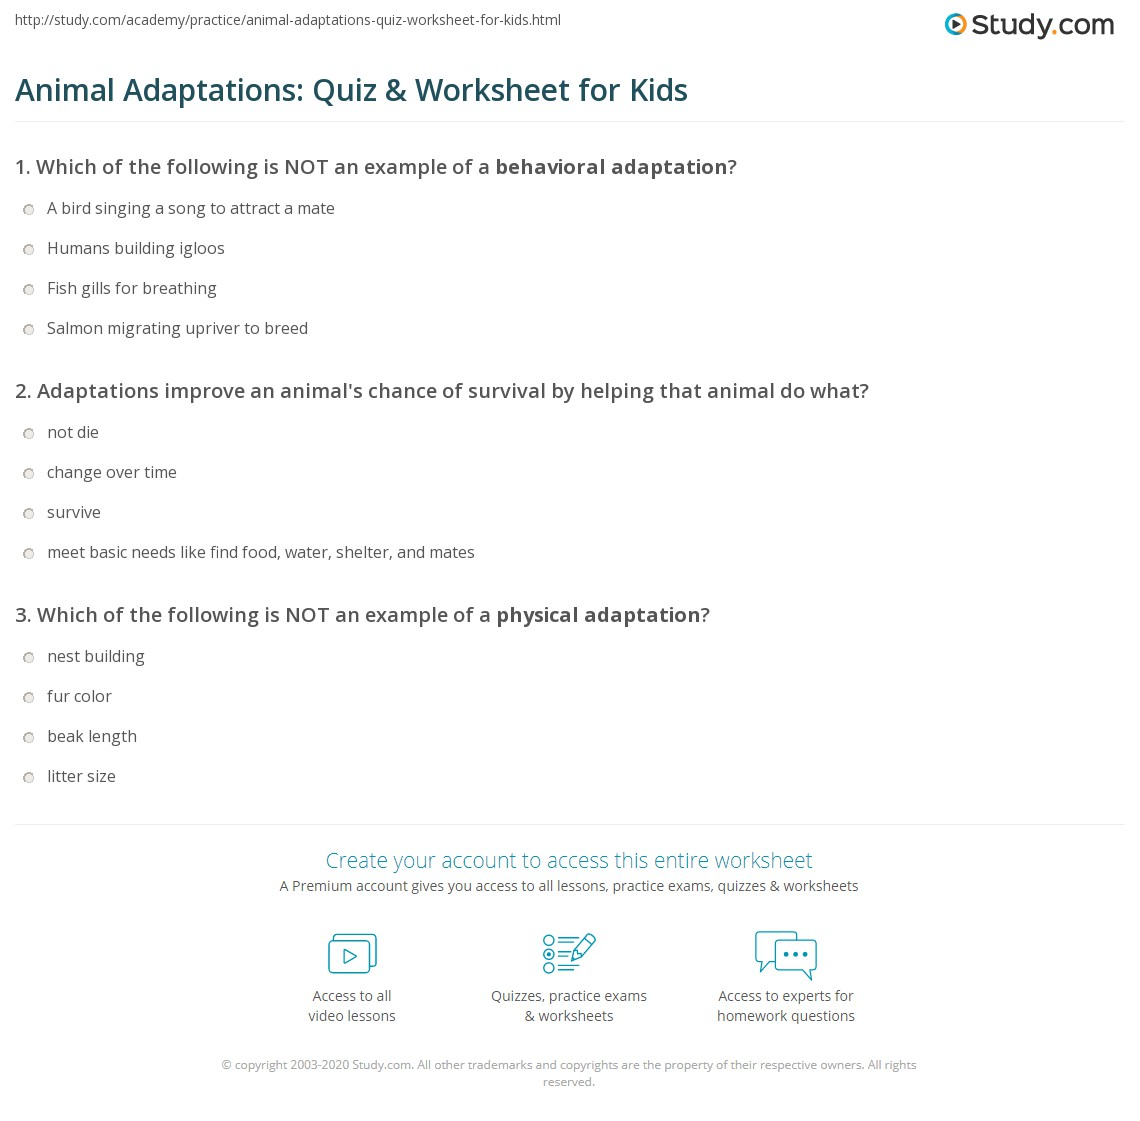 Animal Adaptations Worksheets : Animal adaptations quiz worksheet for kids study